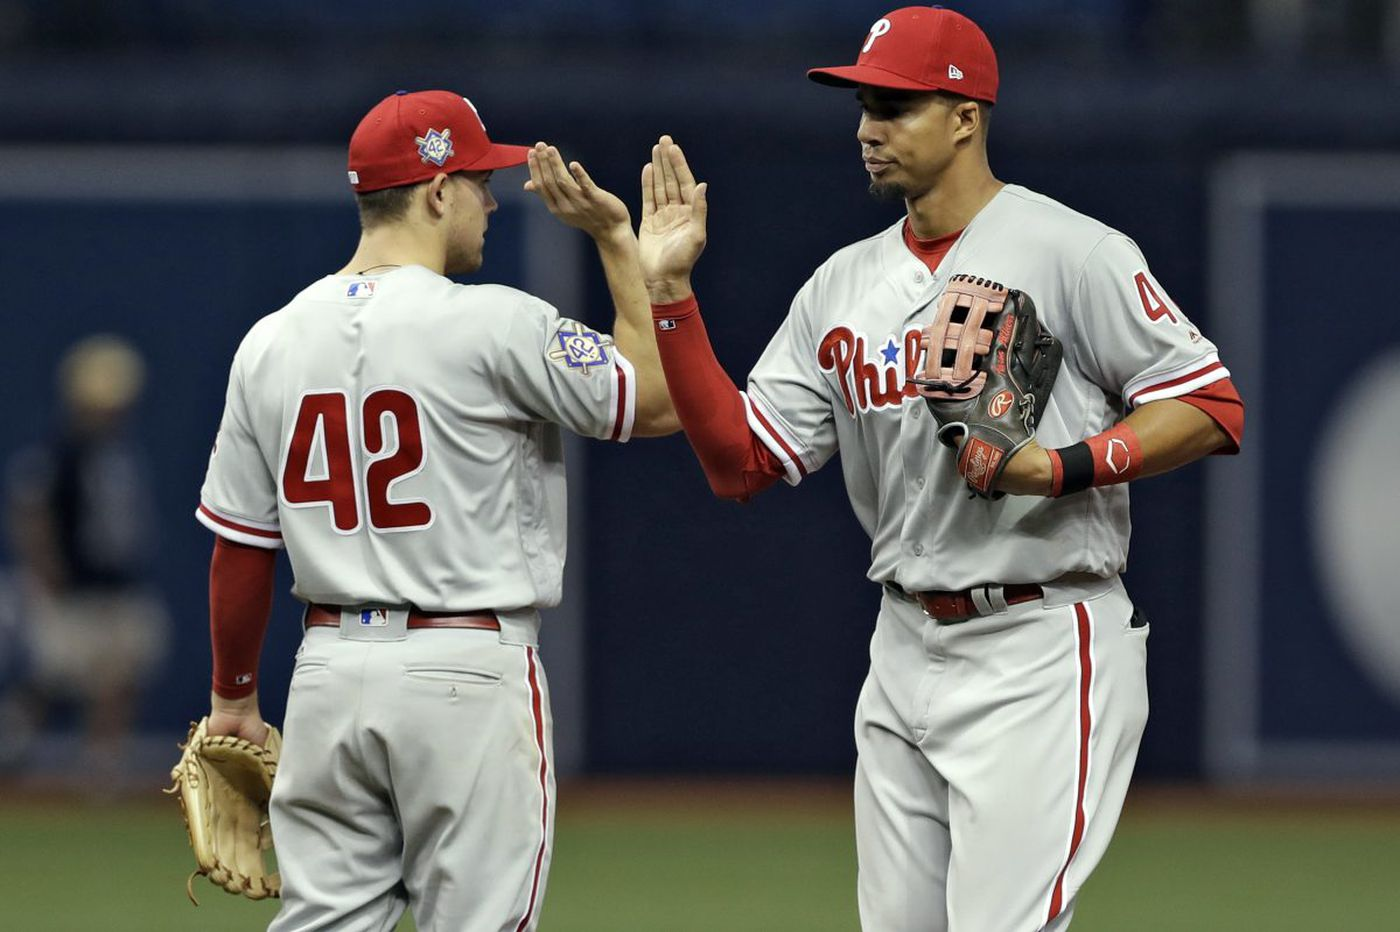 Aaron Altherr's diving catch started with Phillies' emphasis on analytics